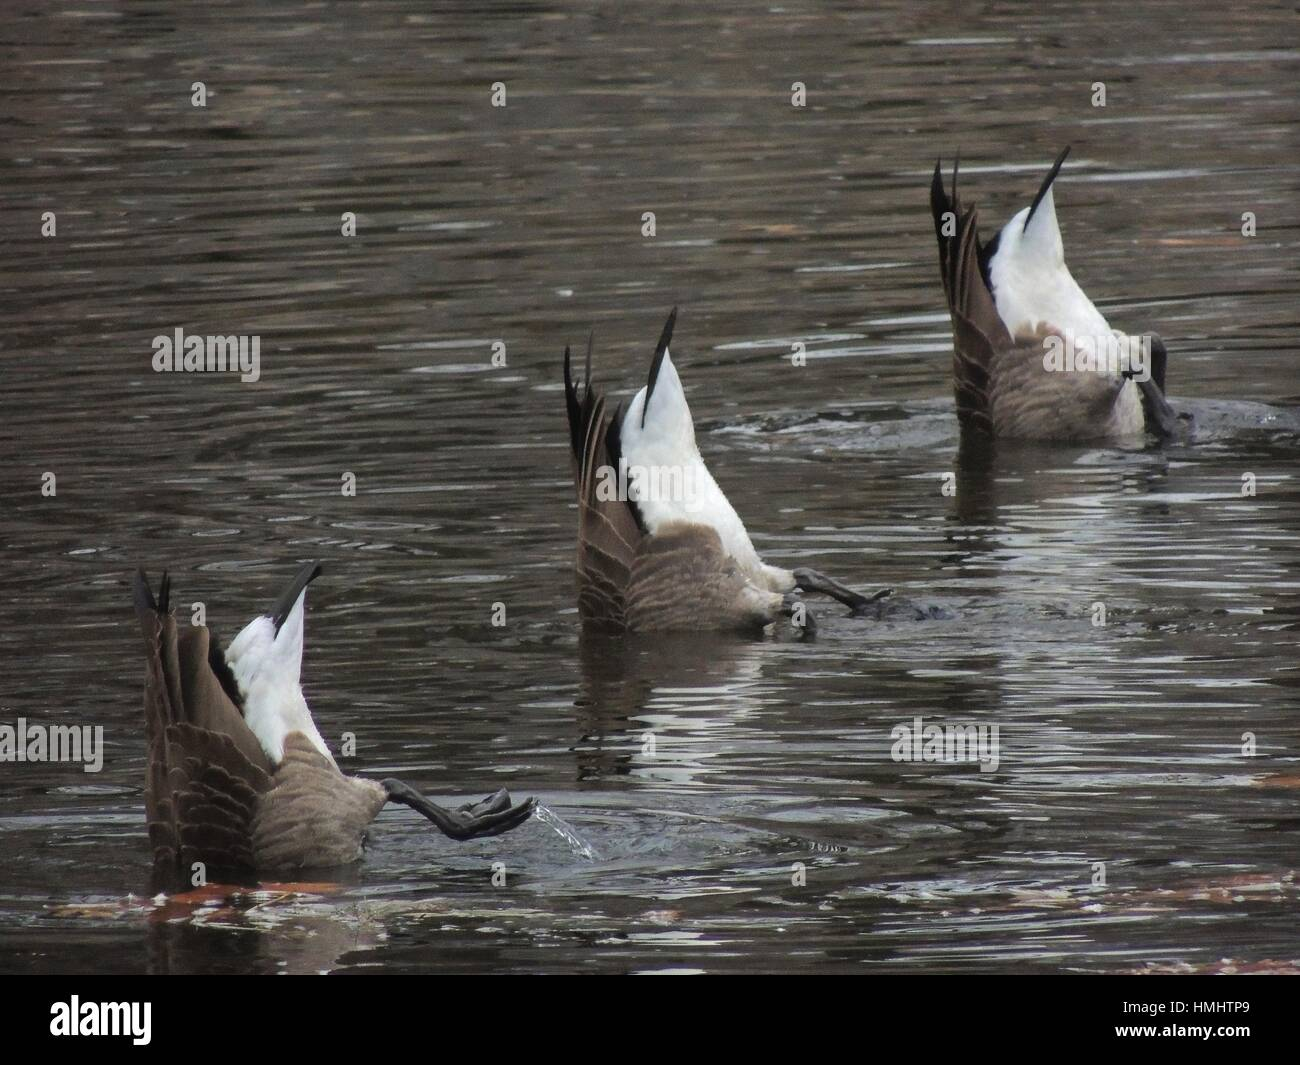 Three geese put their bottoms in the air to search for food beneath the surface of a stream, Pennsylvania, USA. Stock Photo